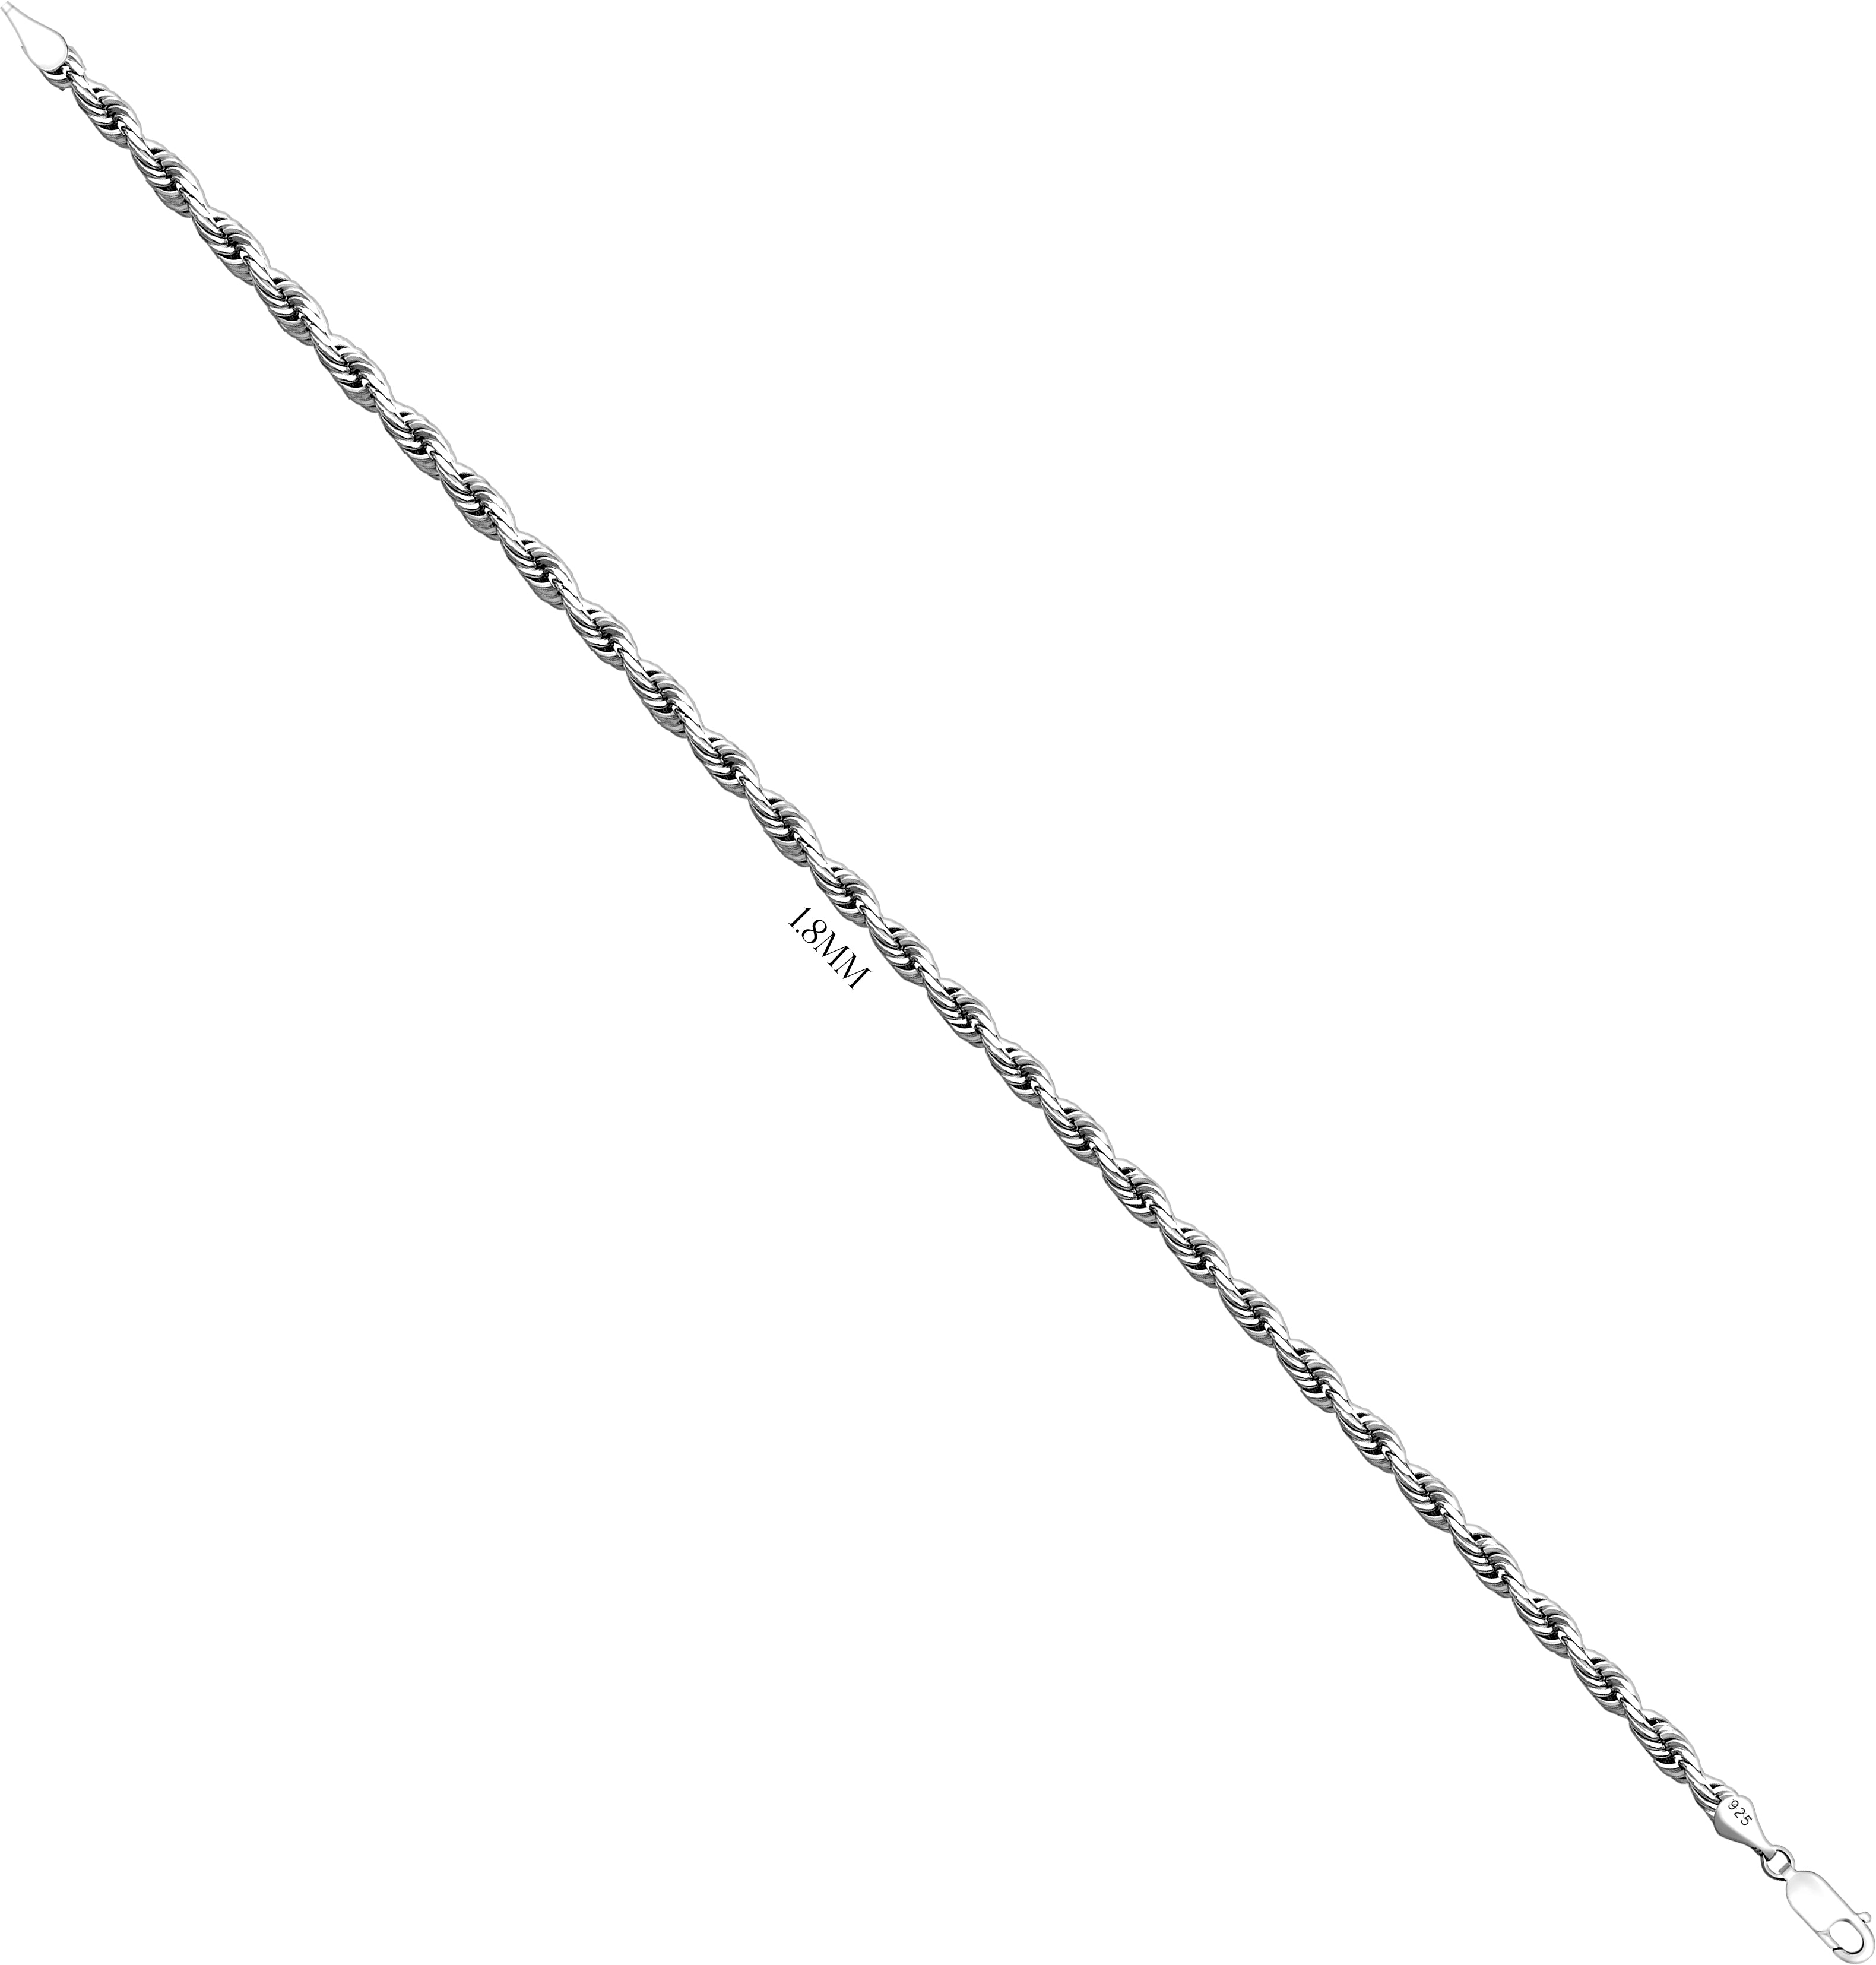 Diamond Cut Rope Chain Necklace, Sizes 1.8mm - 5.2mm